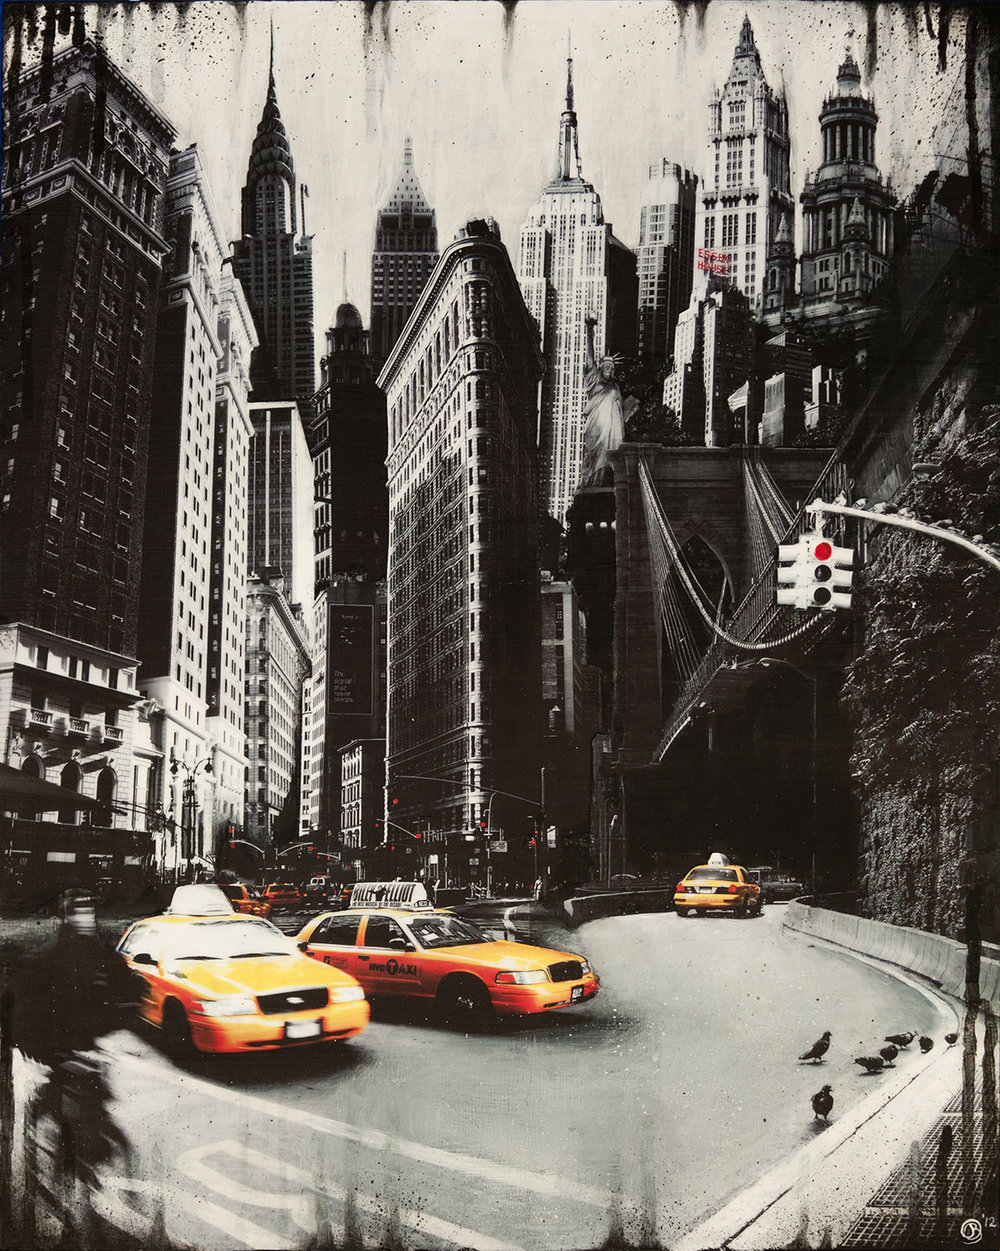 """NYC Traffic"", 2012, by Denise Buisman Pilger. Mixed media on wood, 20"" x 16"". Copyright © 2012 Denise Buisman Pilger. Used by permission of the artist."